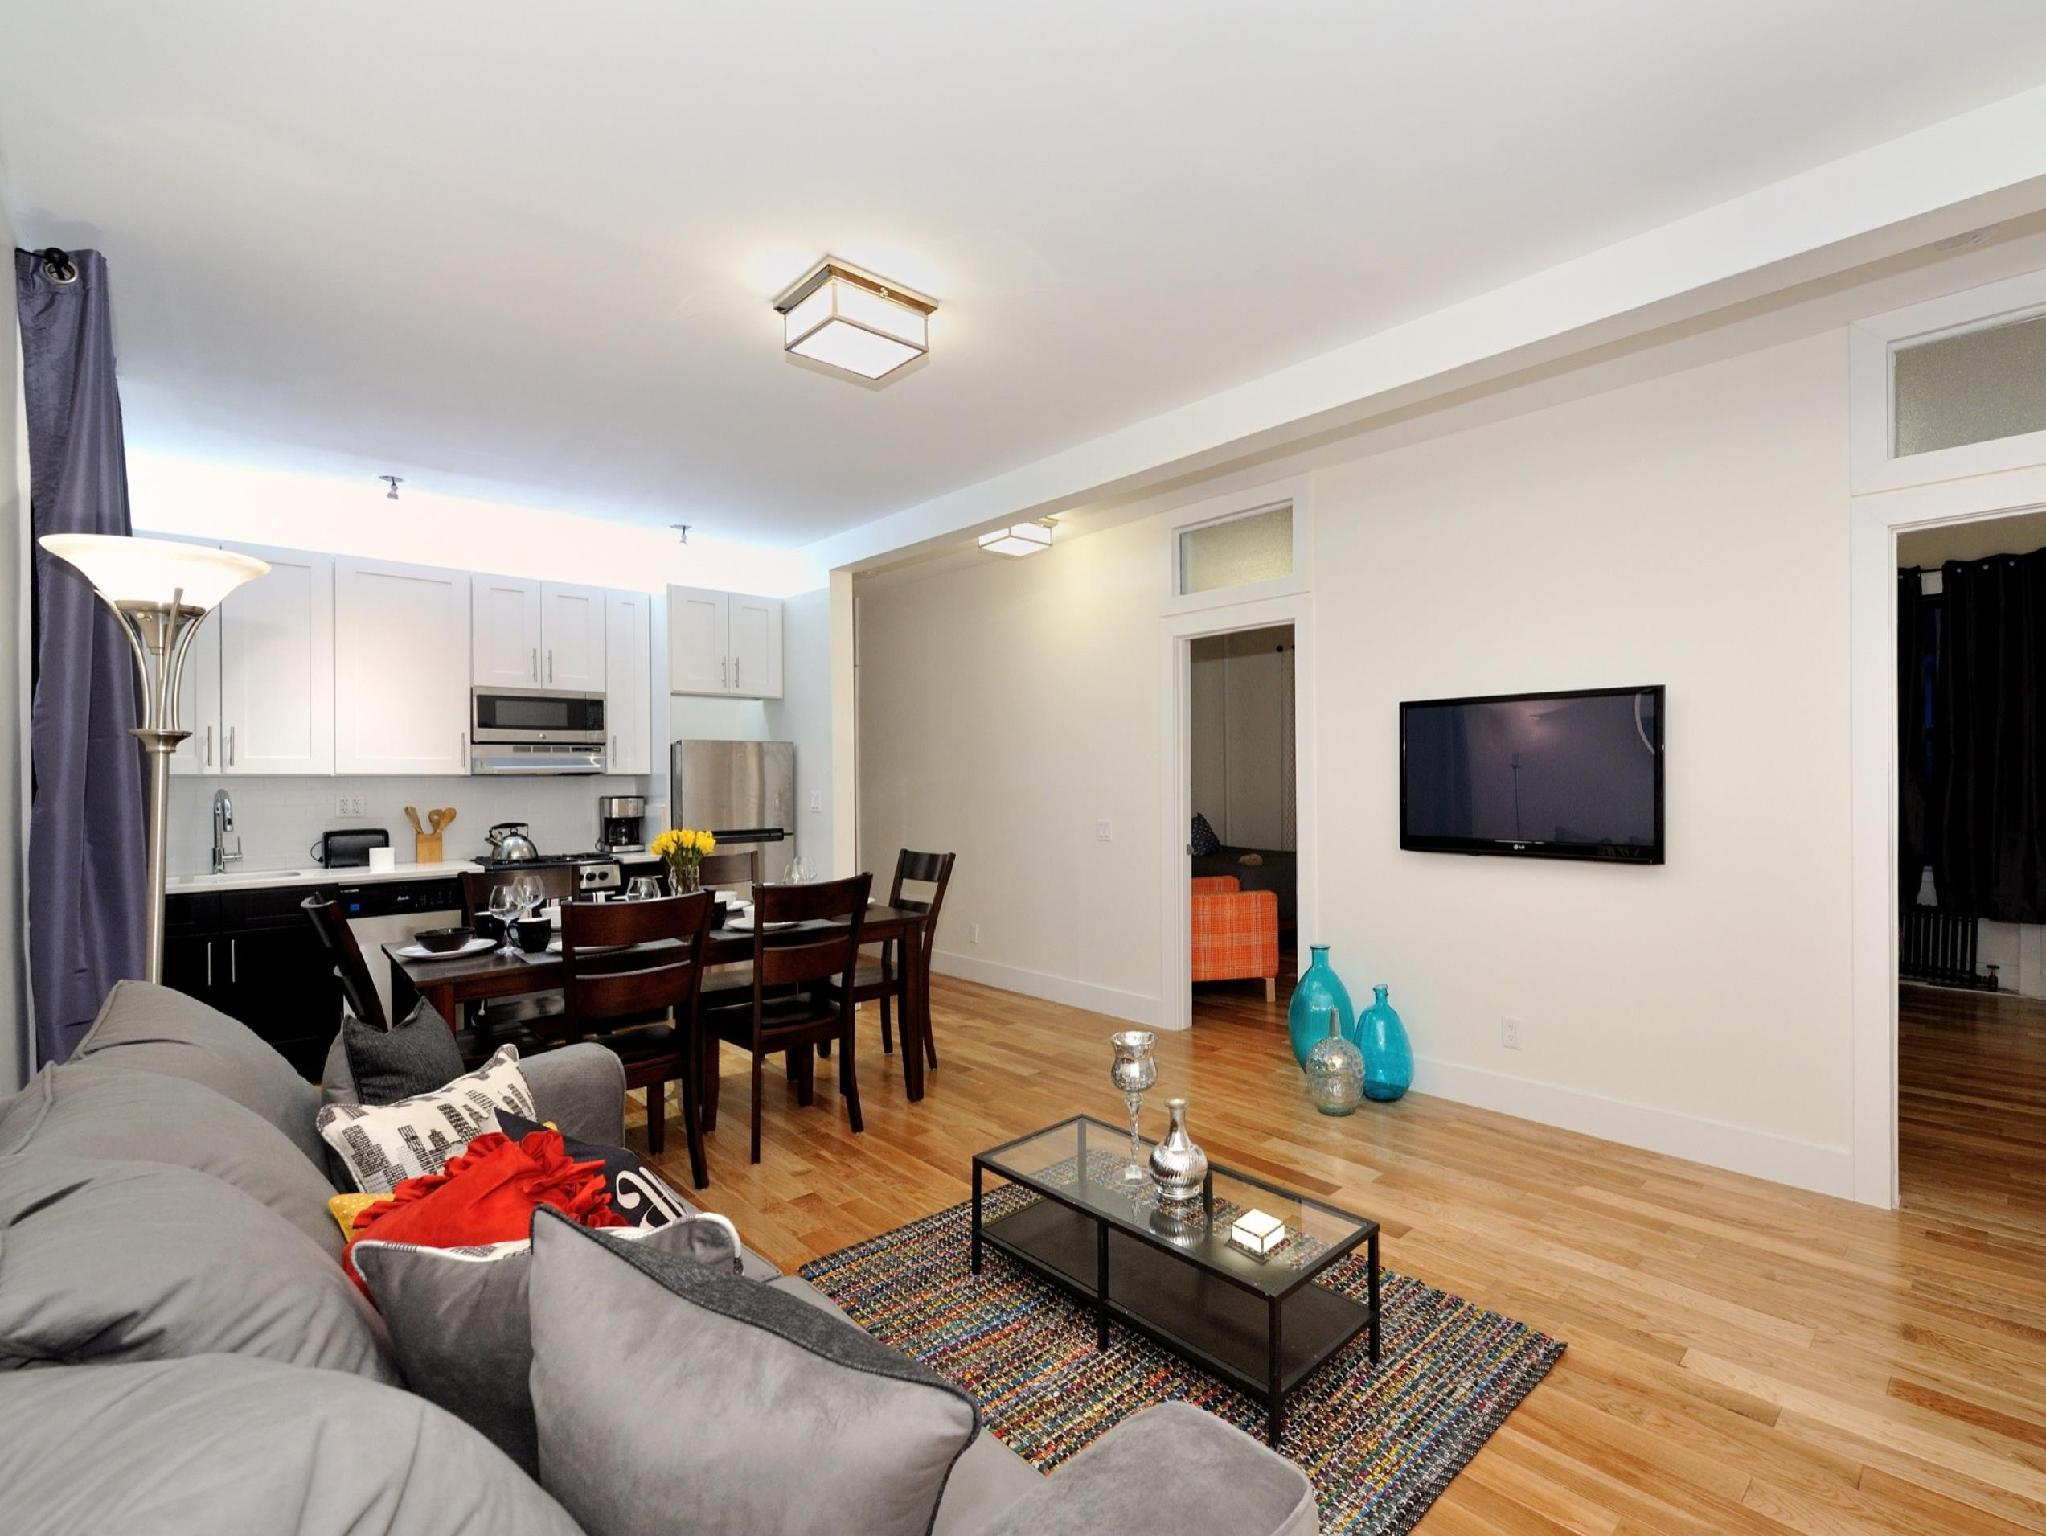 NYC Large 4BR 15 Min From Times Square